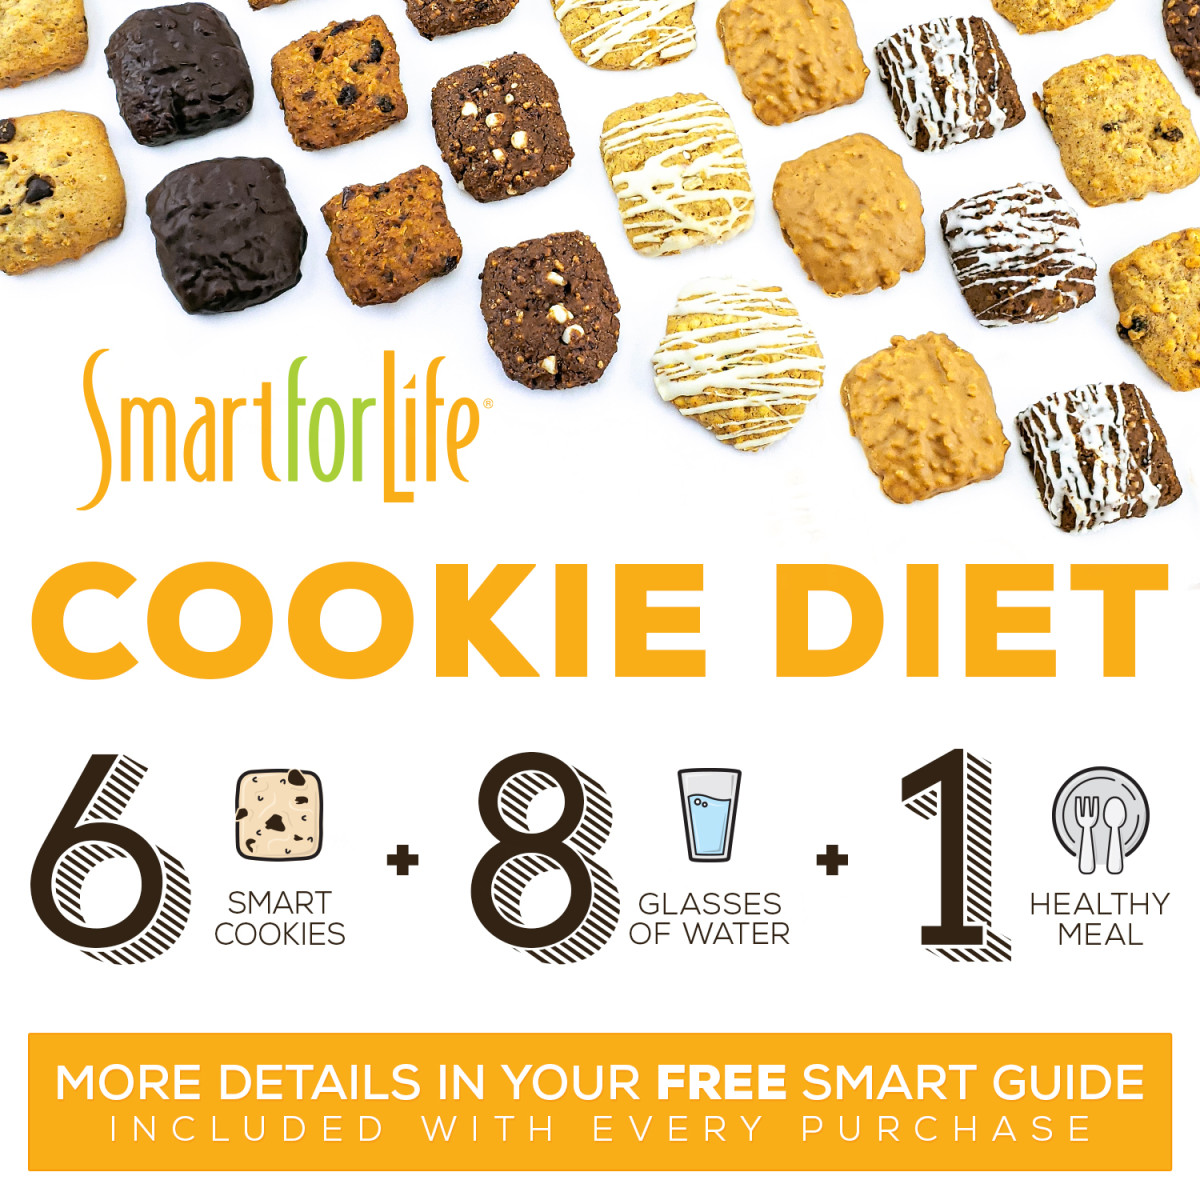 Making Healthy Decisions with Smart for Life